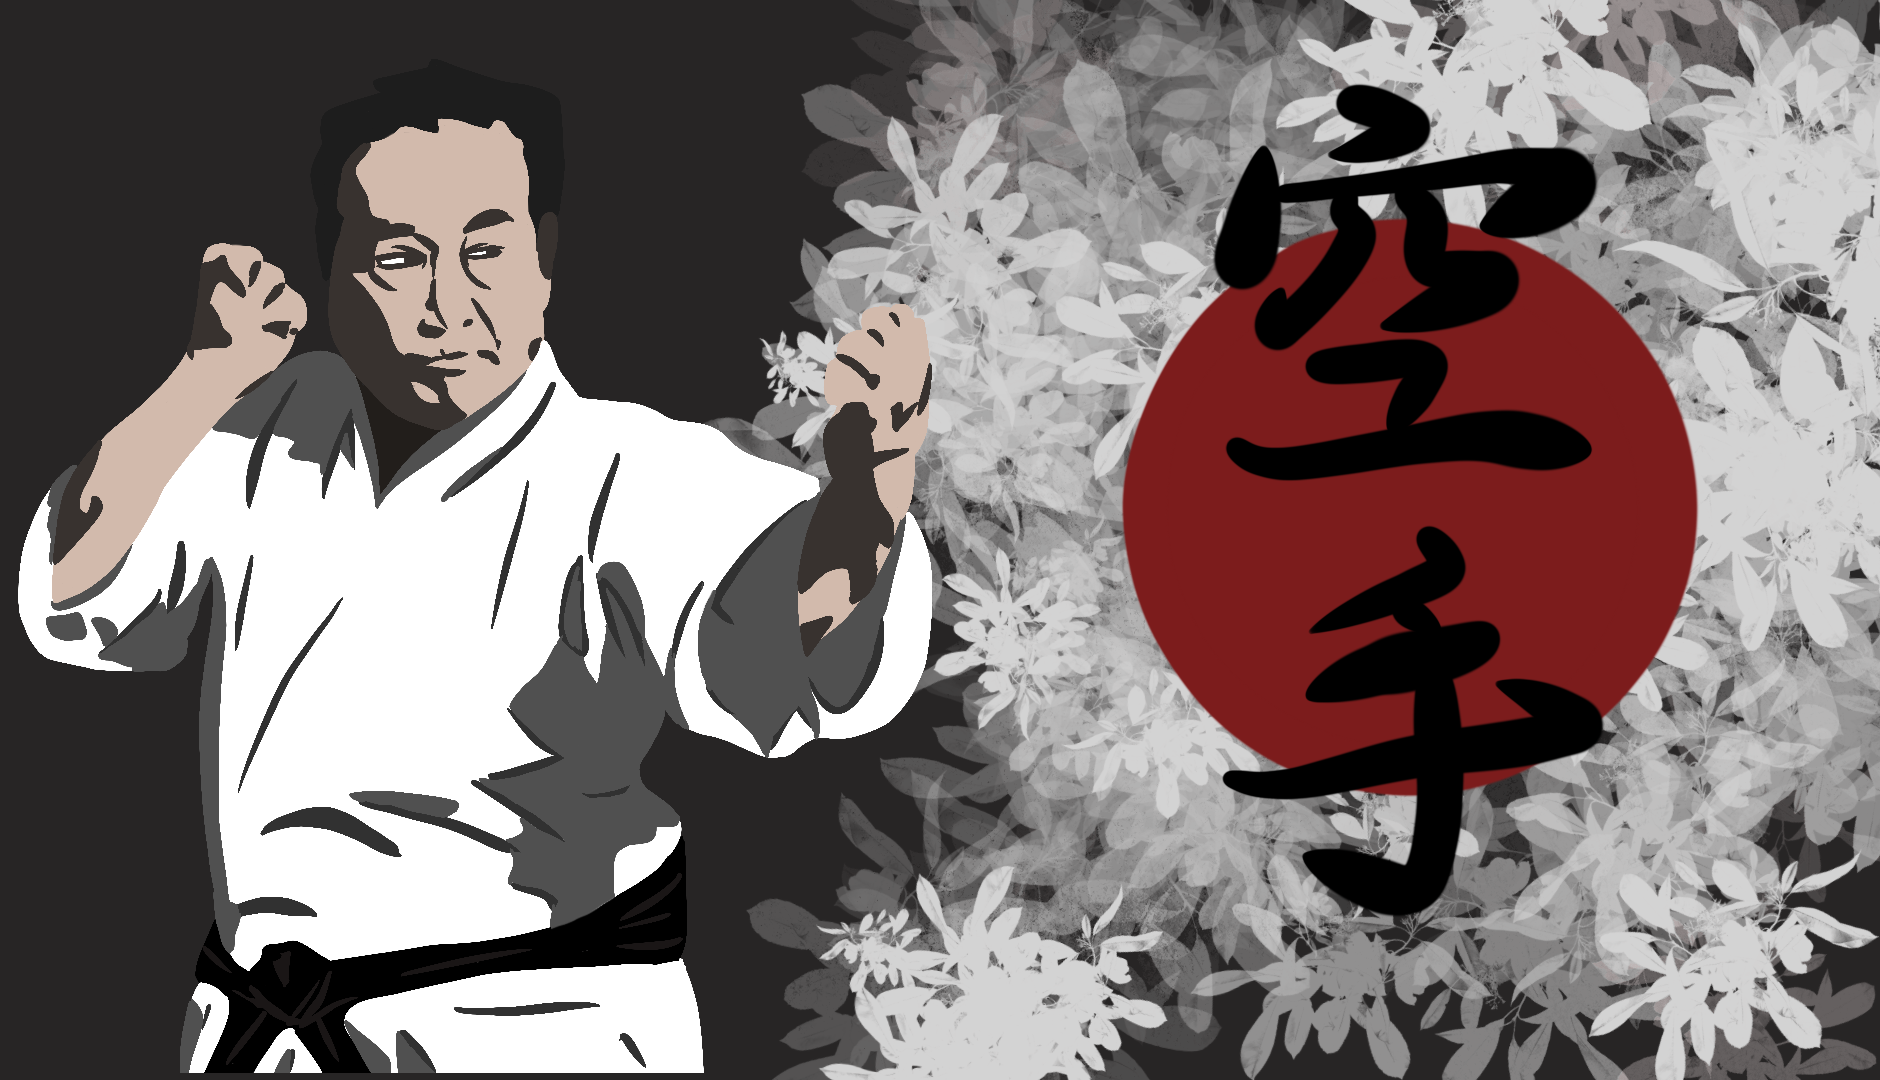 National Karate Kobudo Federation Karate Programs. Learn Karate Styles online and test for certification.